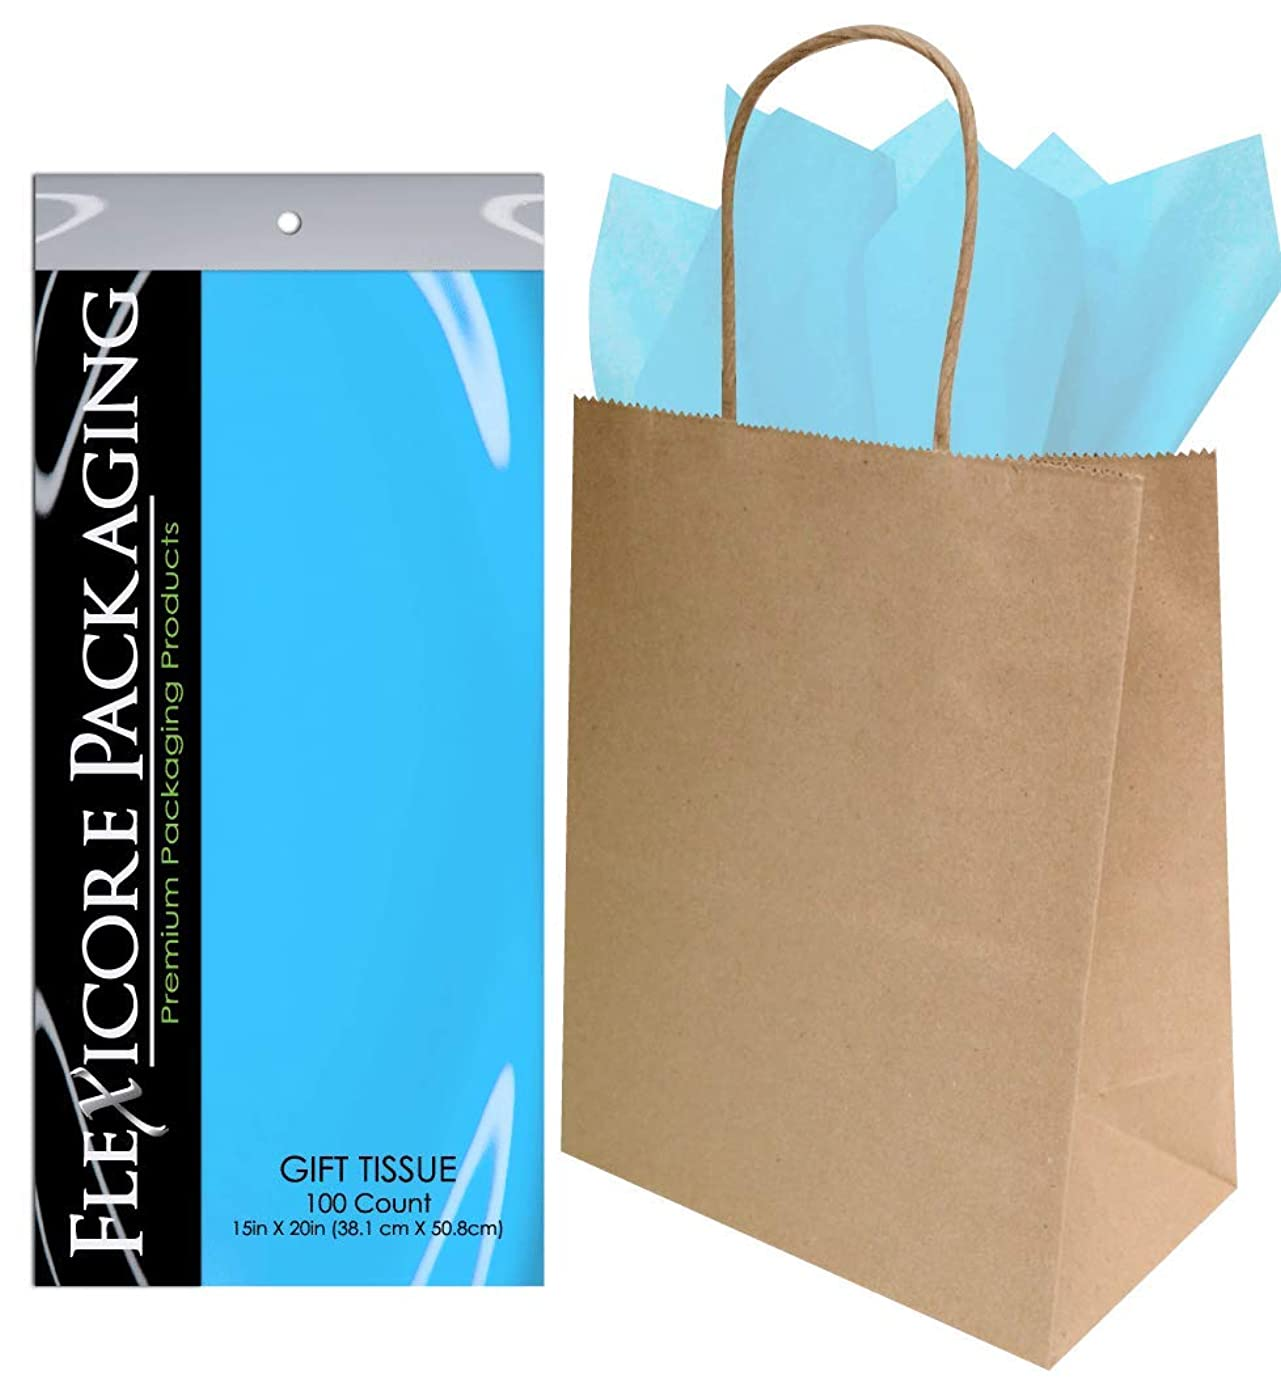 Flexicore Packaging? 50ct Natural Brown Kraft Paper Gift Bags + 100ct Gift Tissue Paper (Light Blue)